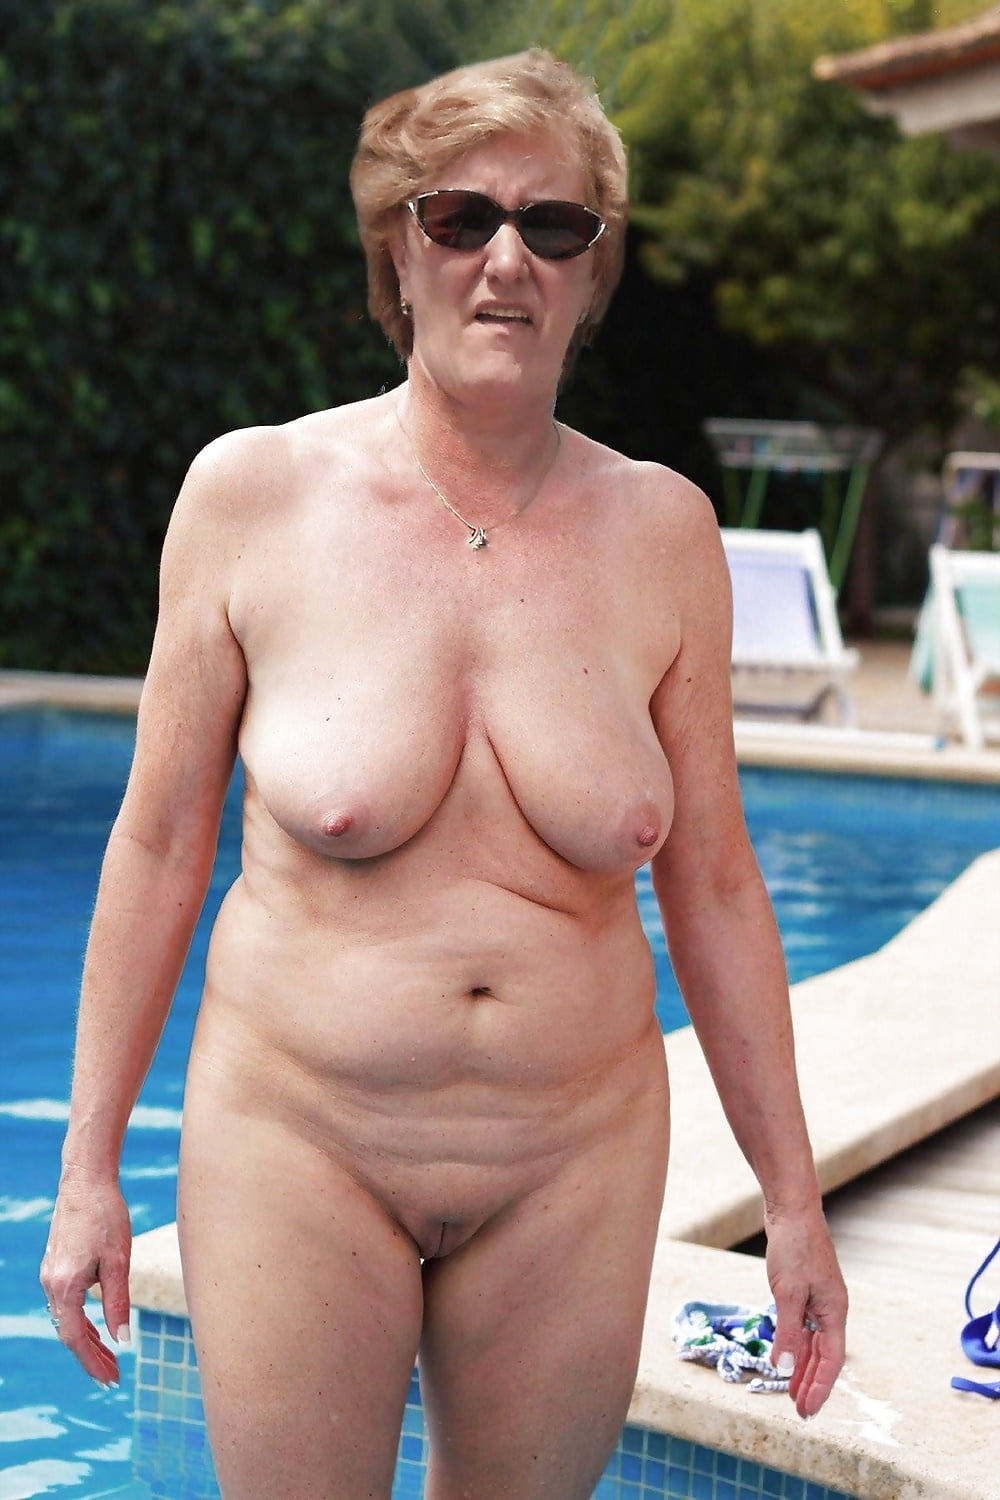 tilly-nipslip-older-lady-nude-by-pool-old